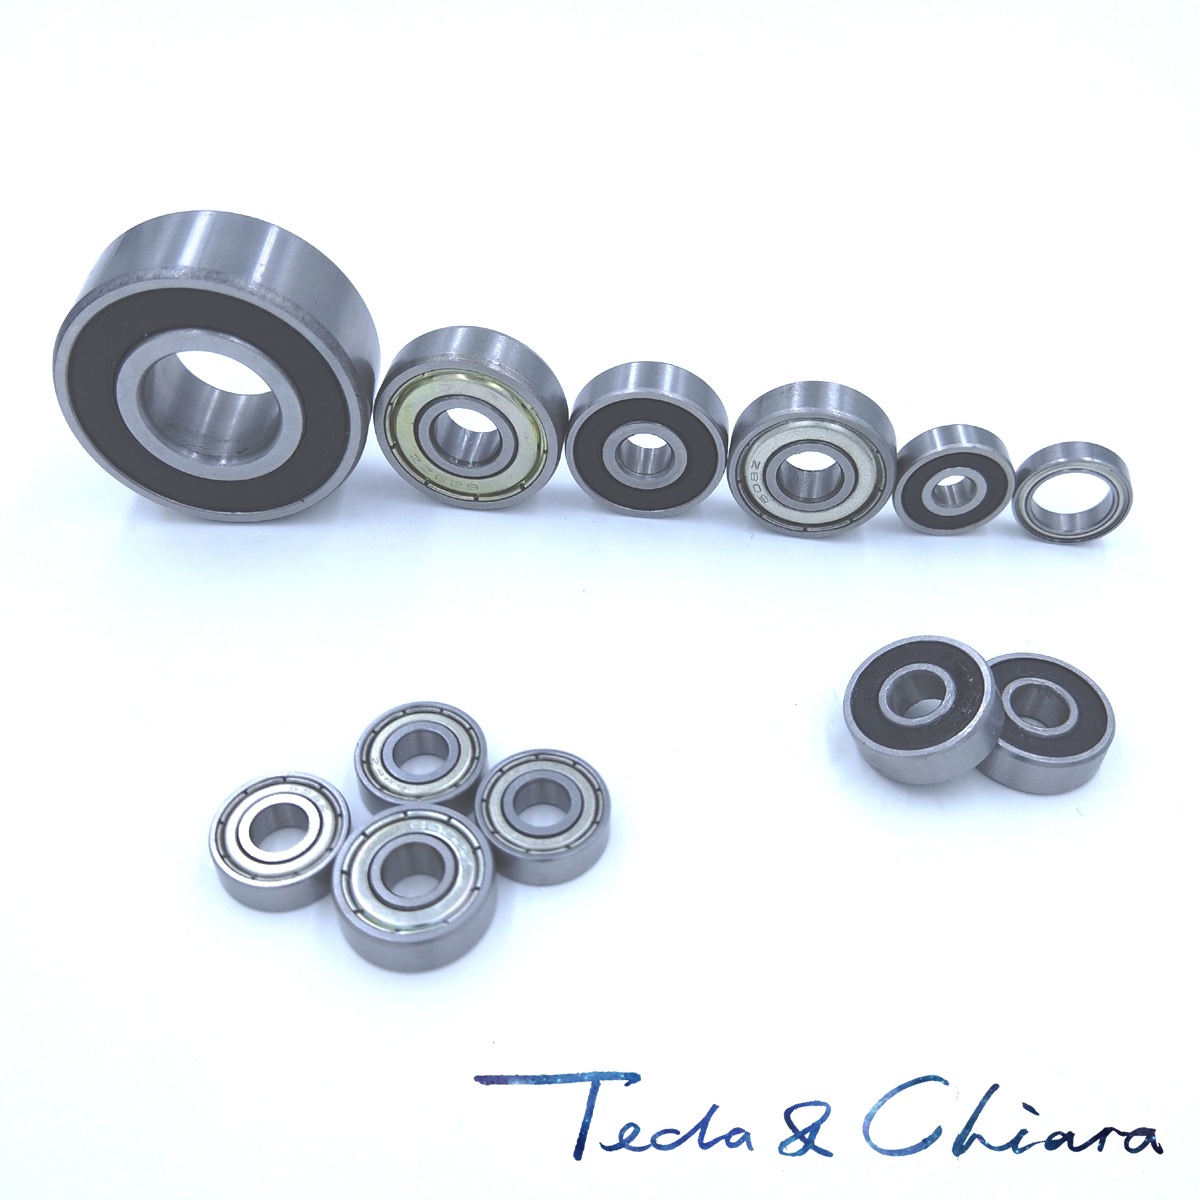 633 633ZZ 633RS 633-2Z 633Z 633-2RS ZZ RS RZ 2RZ Deep Groove Ball Bearings 3 X 13 X 5mm